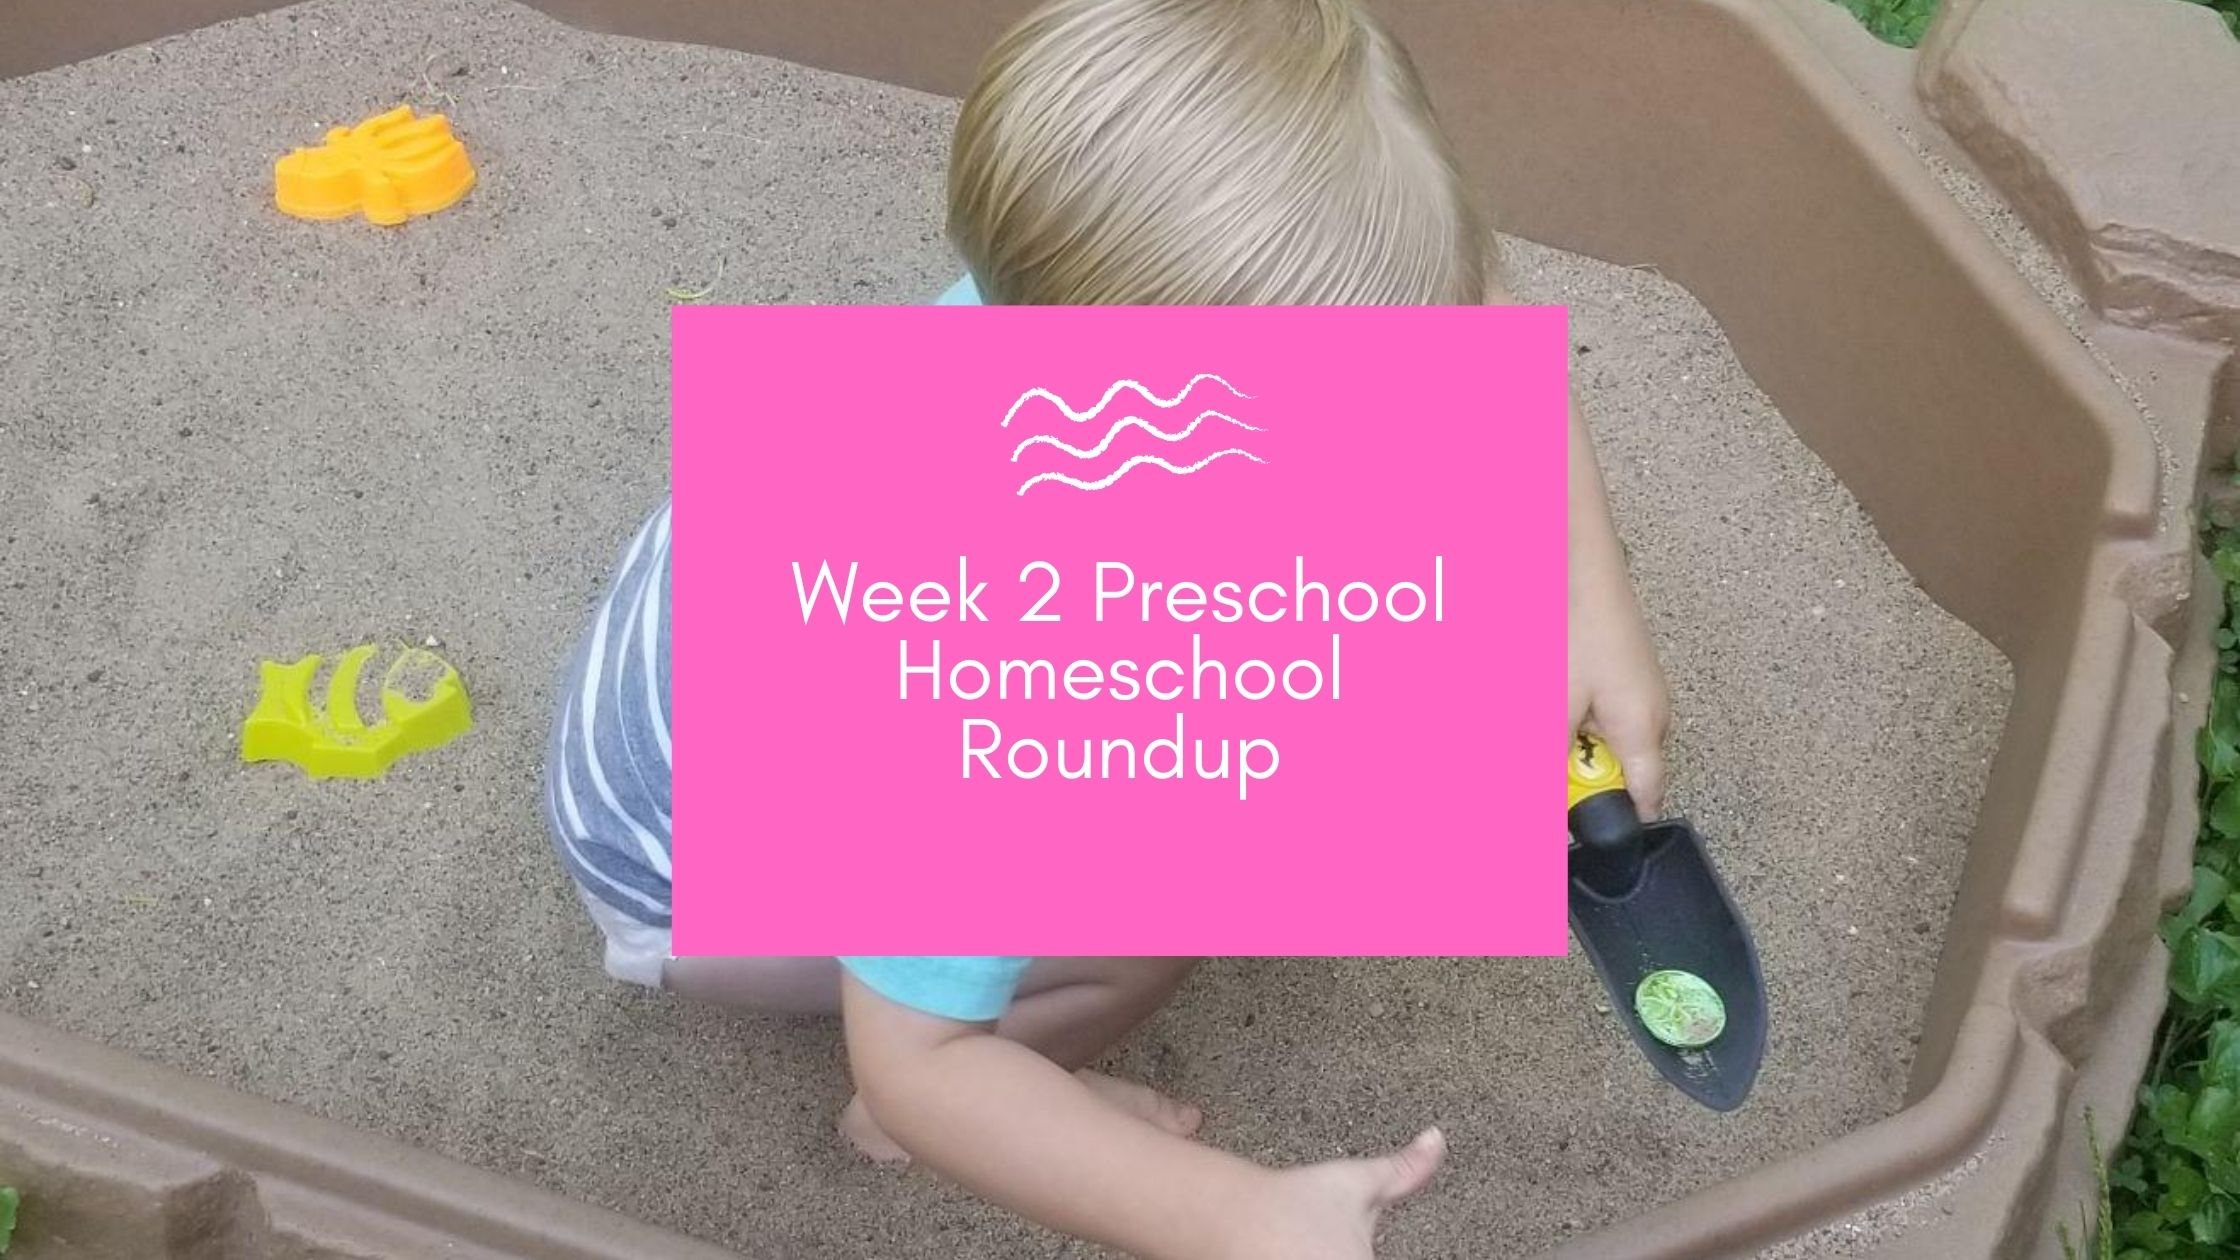 Week 2 Preschool Homeschool Activities Roundup